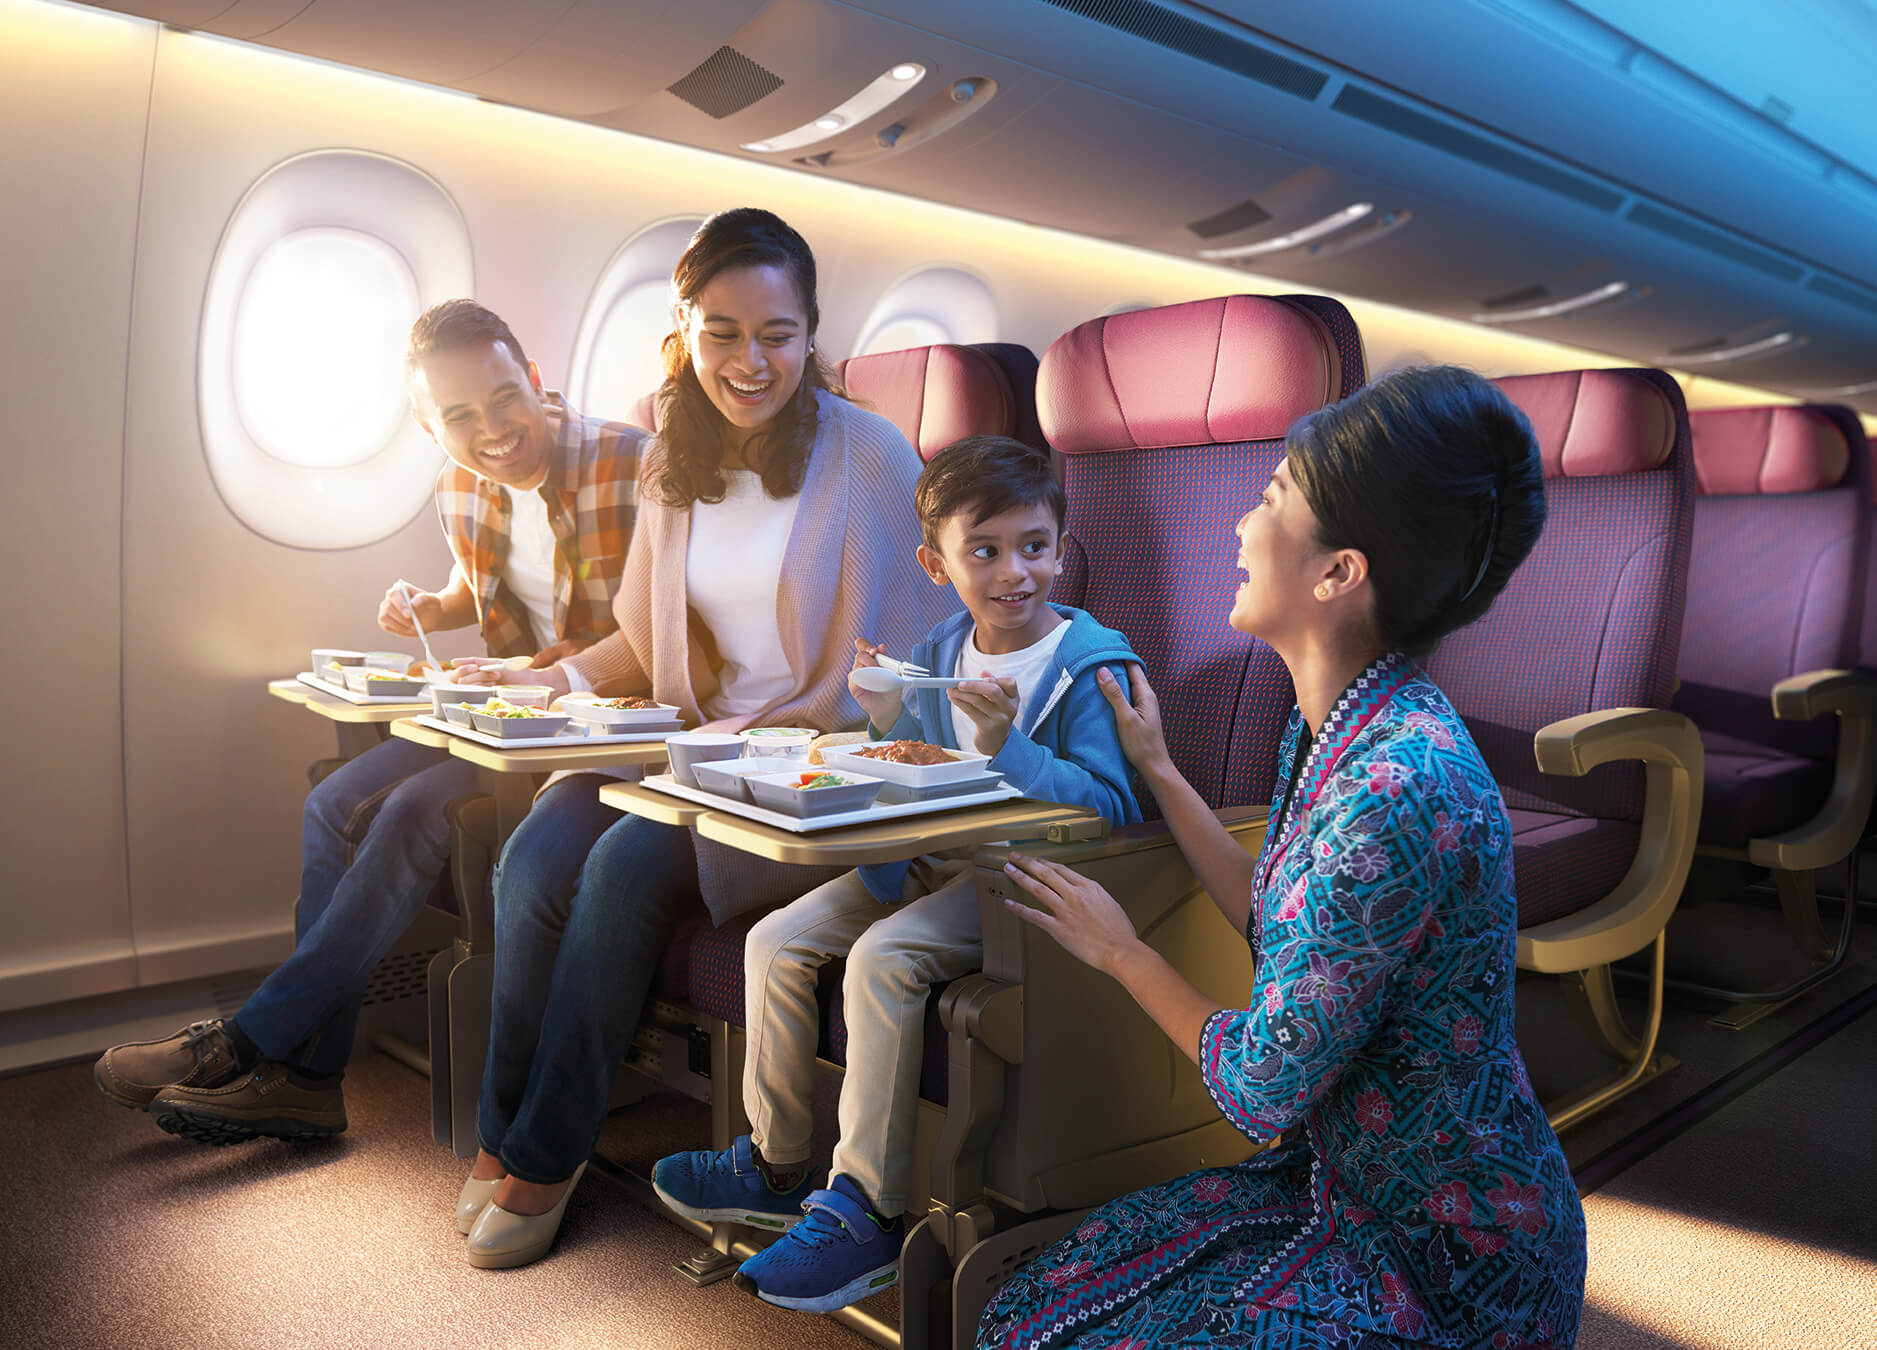 Family having a meal on an airplane